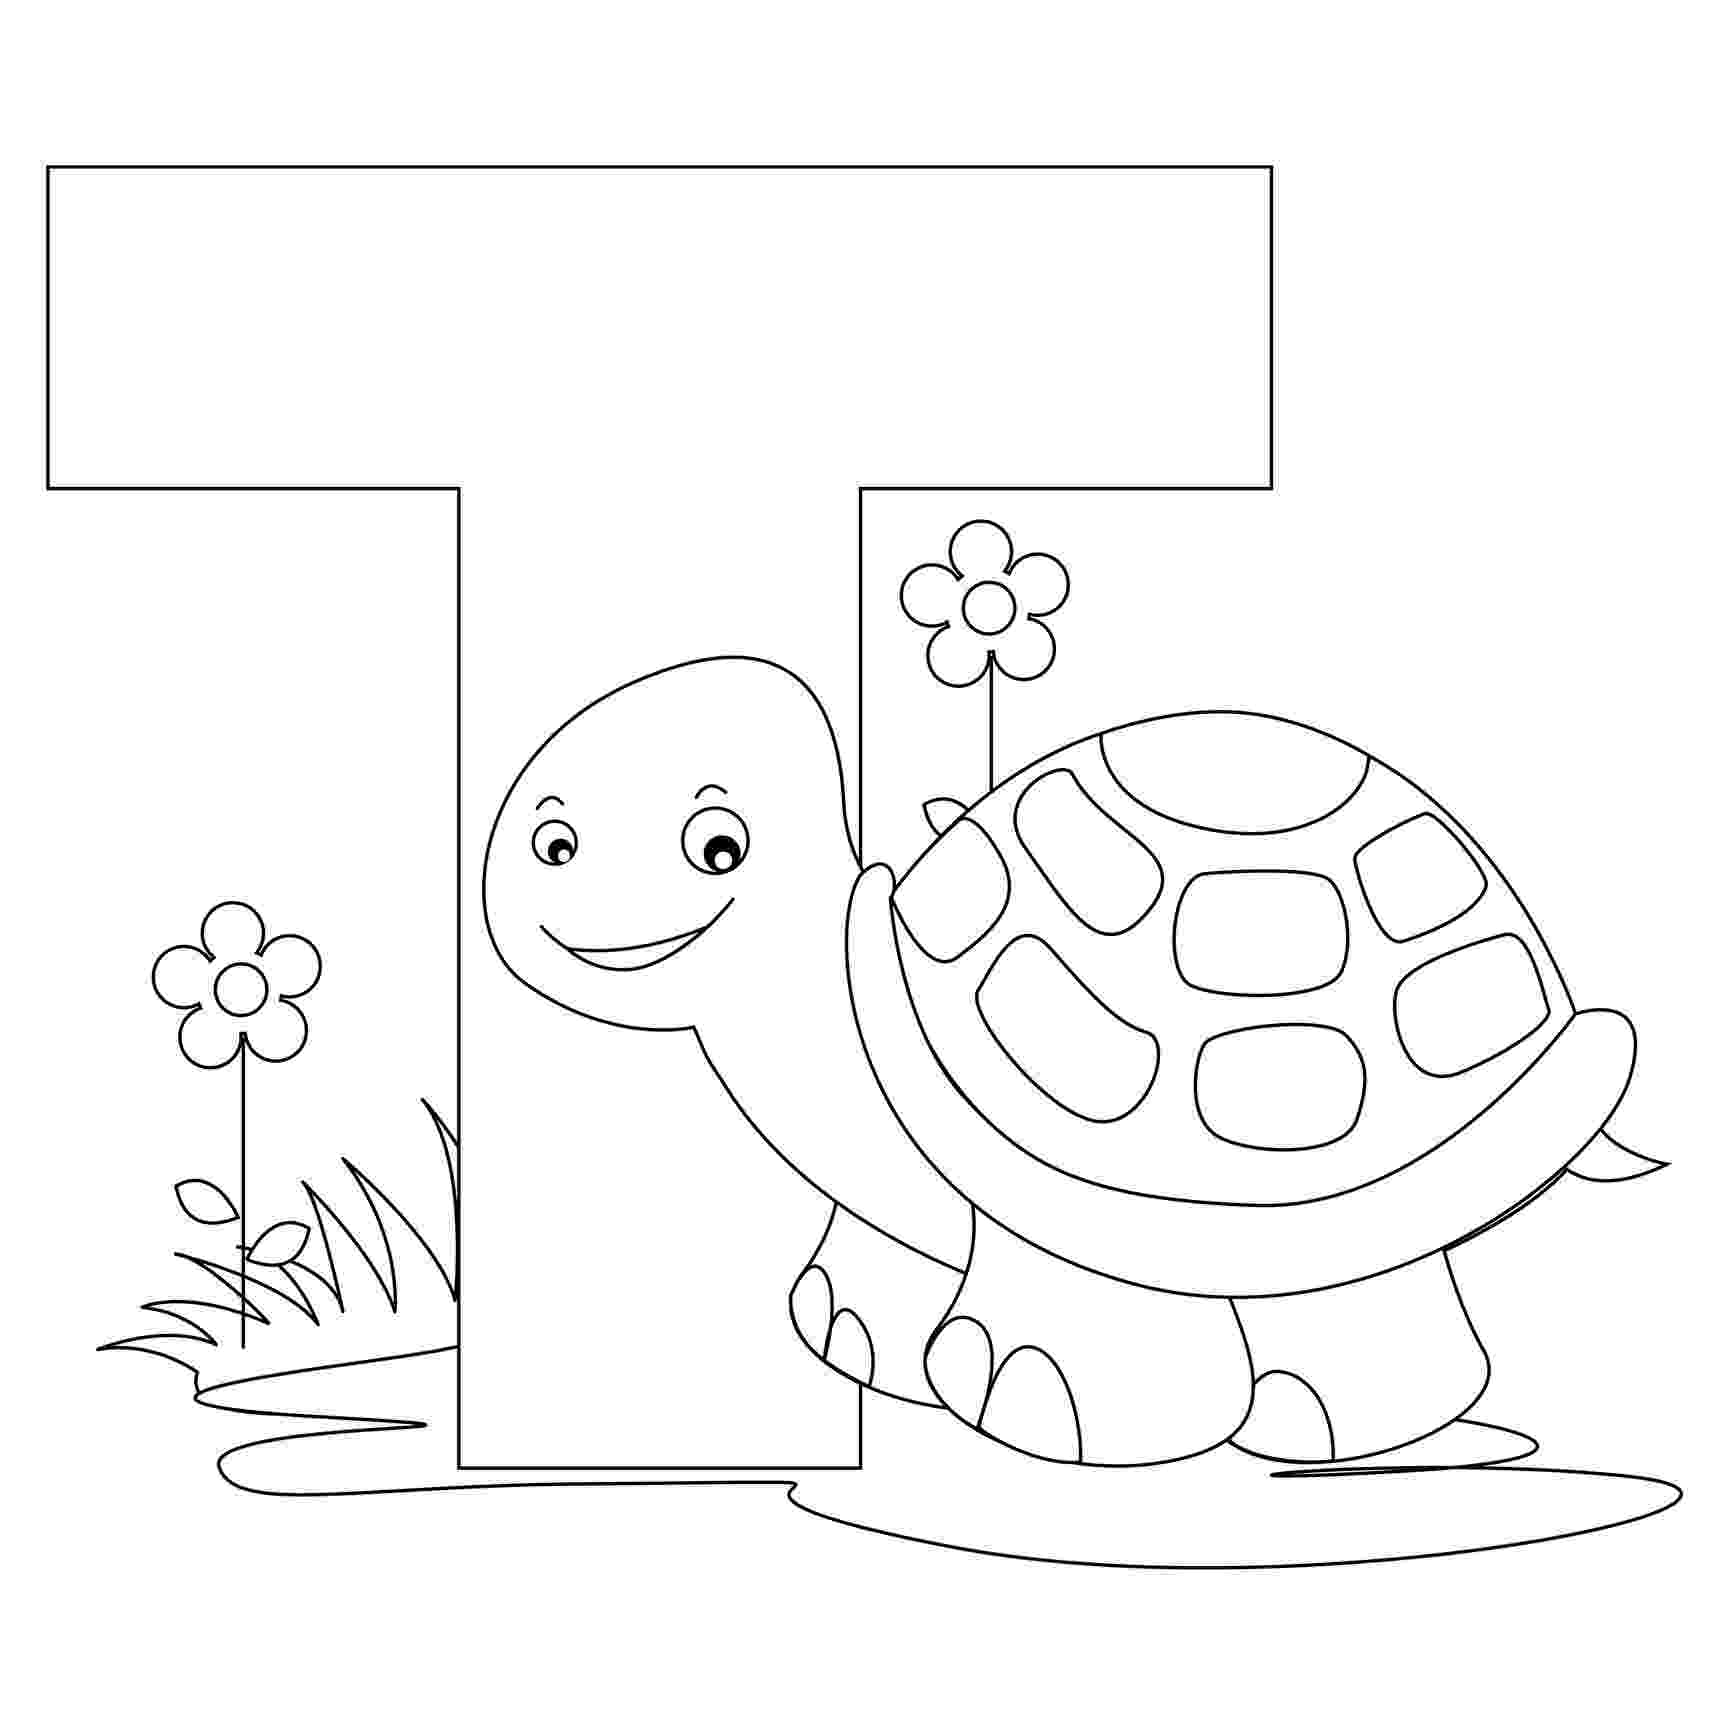 letter t animal coloring pages letter t coloring pages getcoloringpagescom t letter animal coloring pages